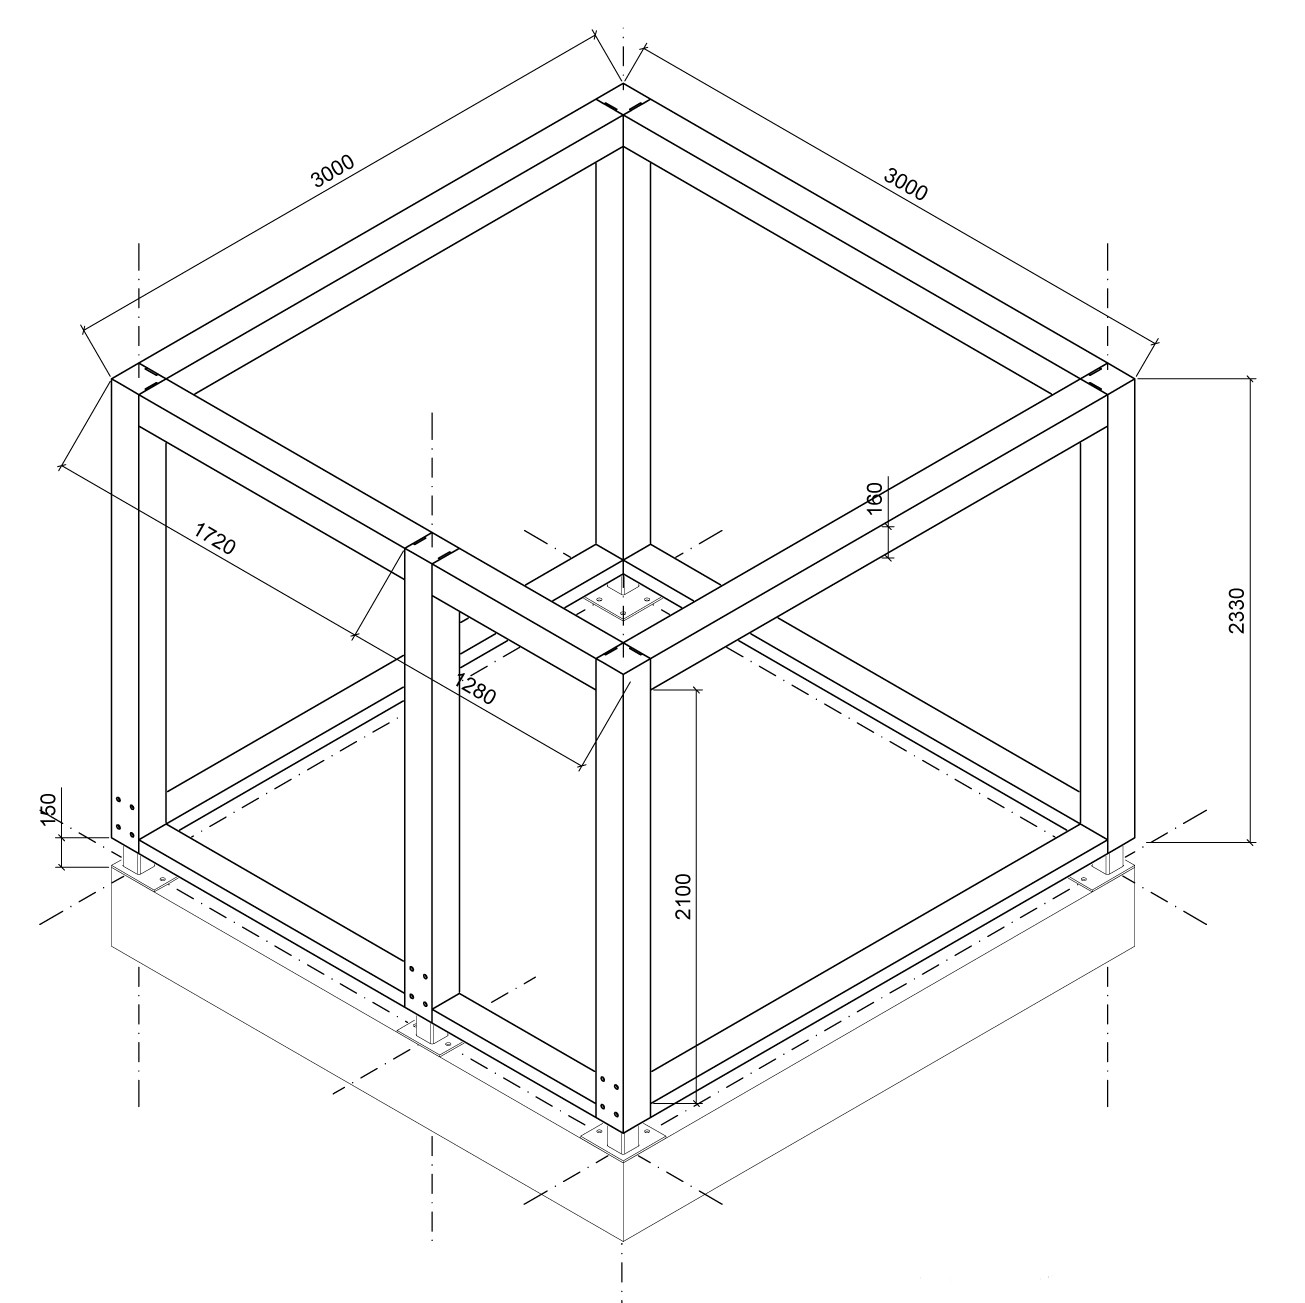 glulam-3d-drawing